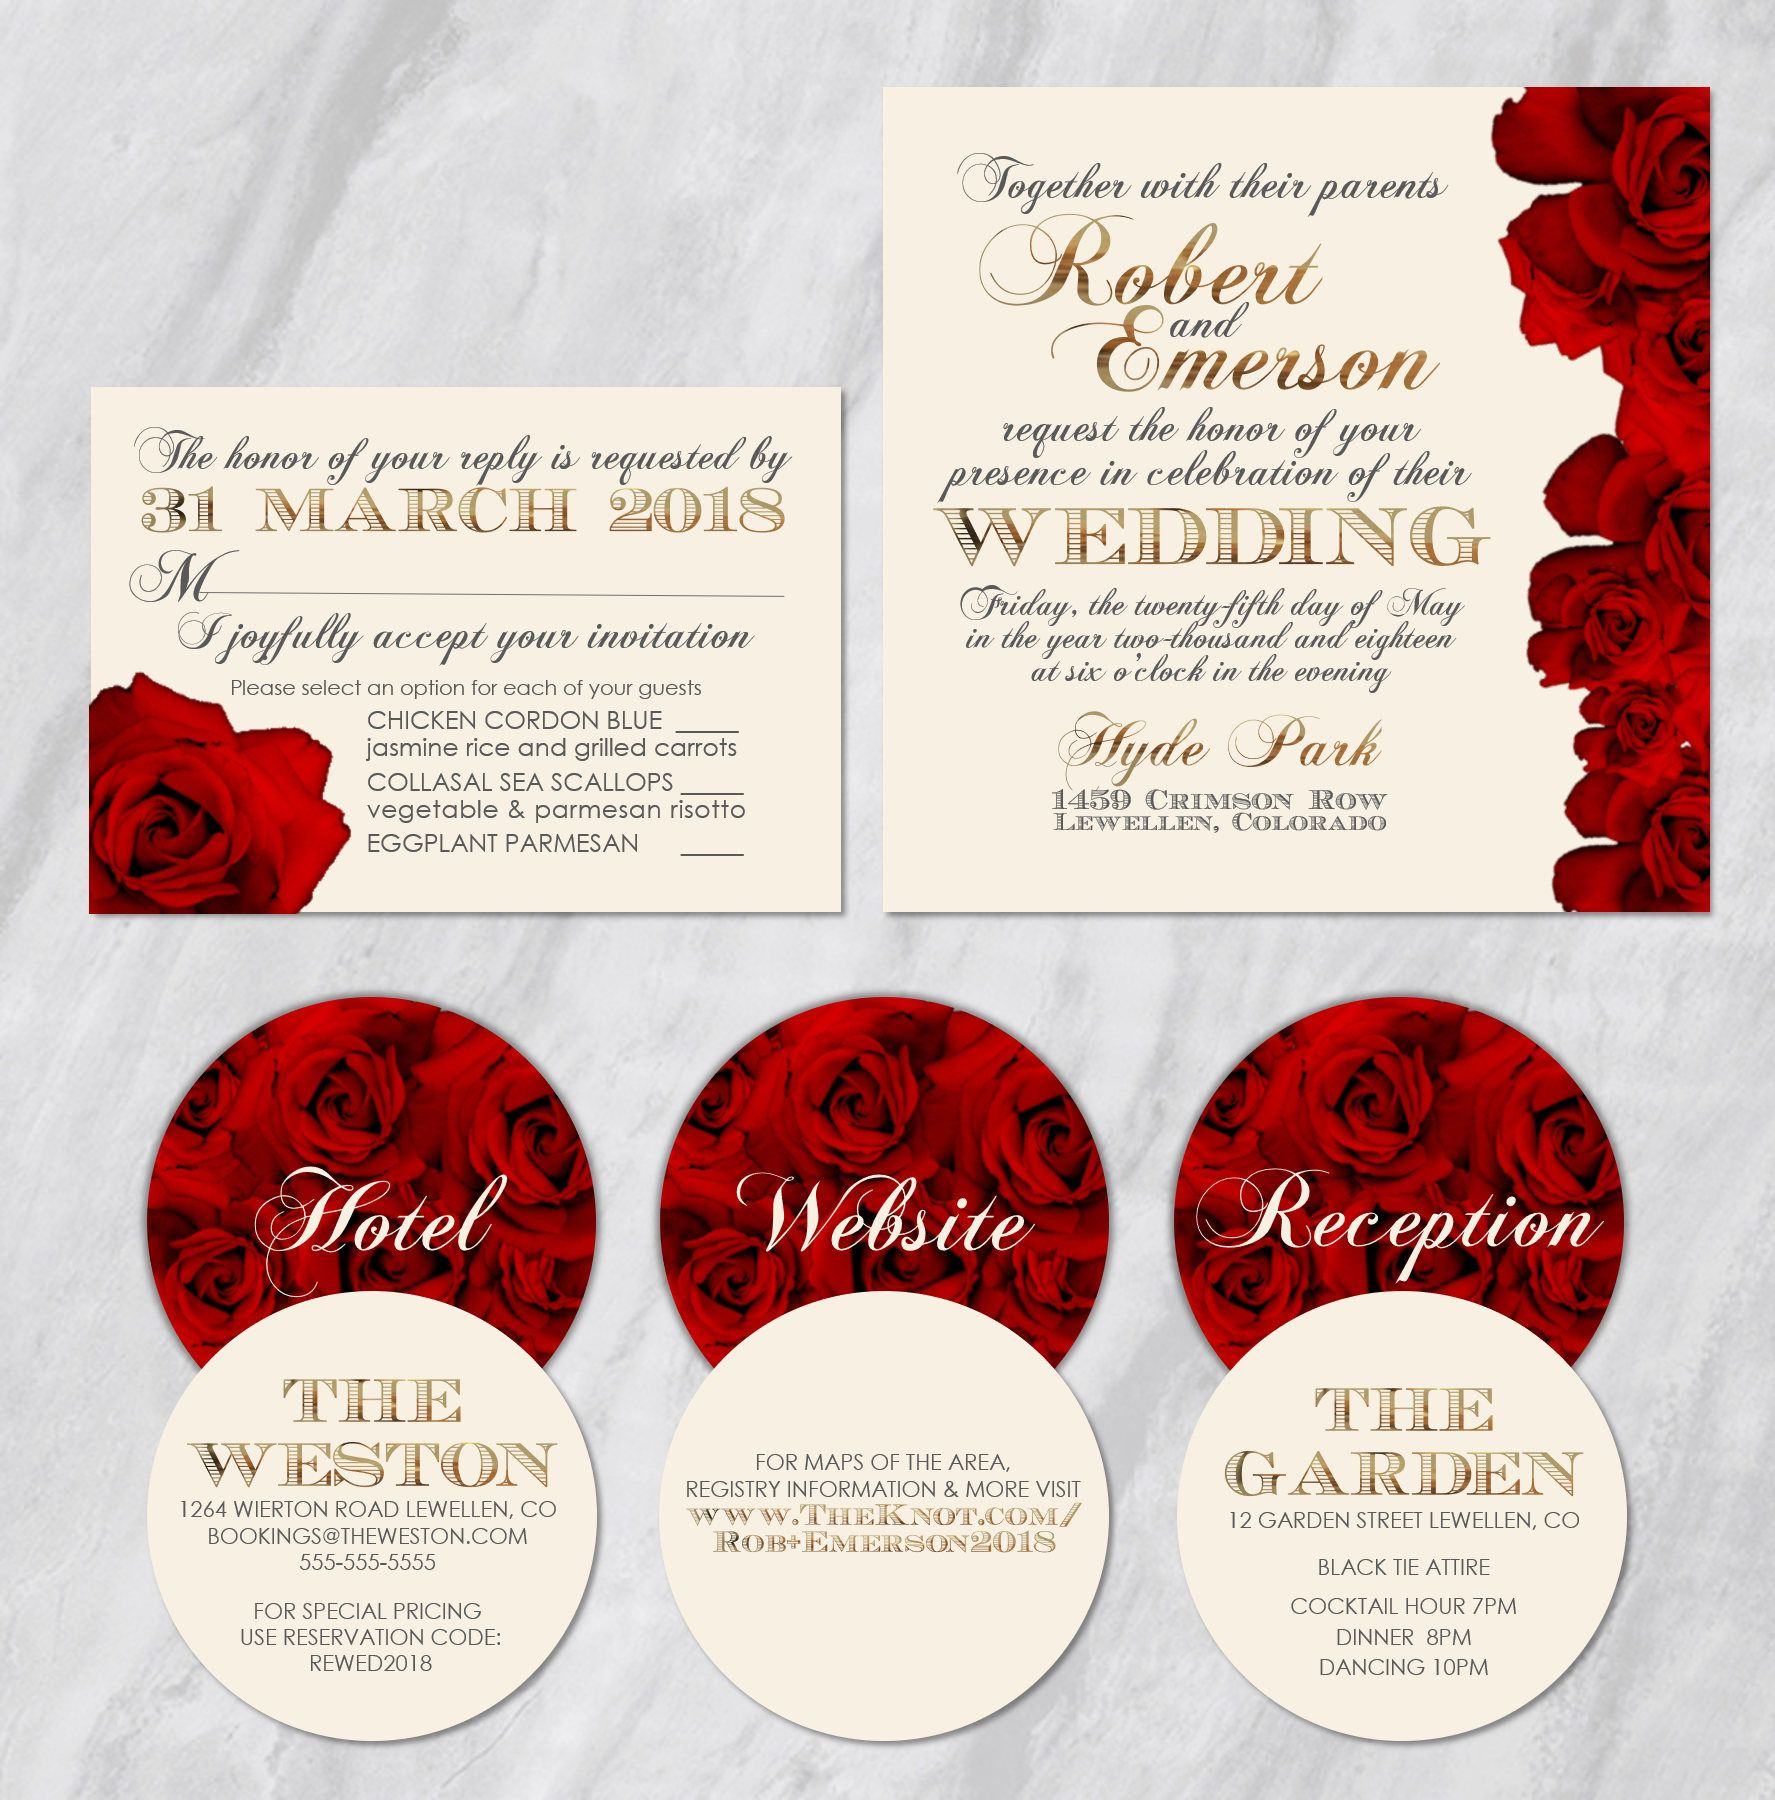 Red Rose Collection - Red Roses with Gold Foil Lettering Accents ...